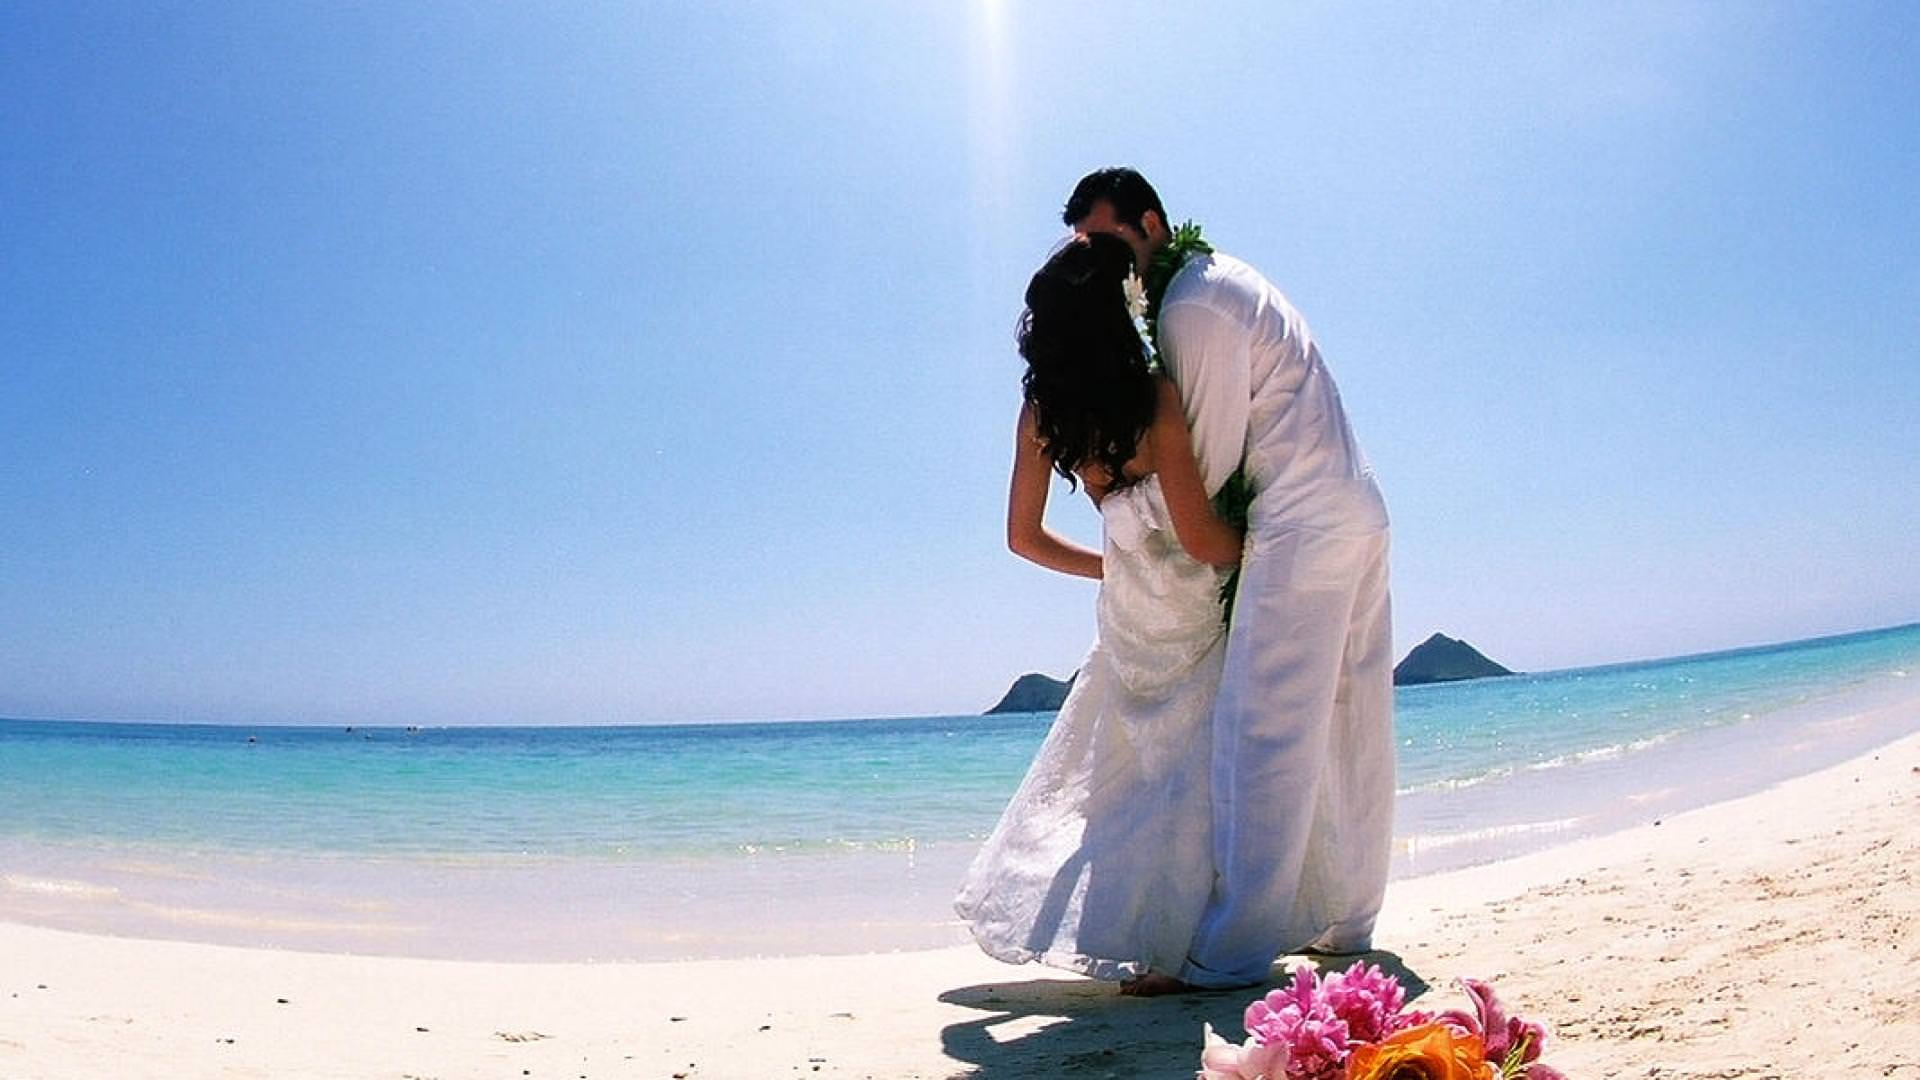 Romantic Beach Wedding Wallpaper